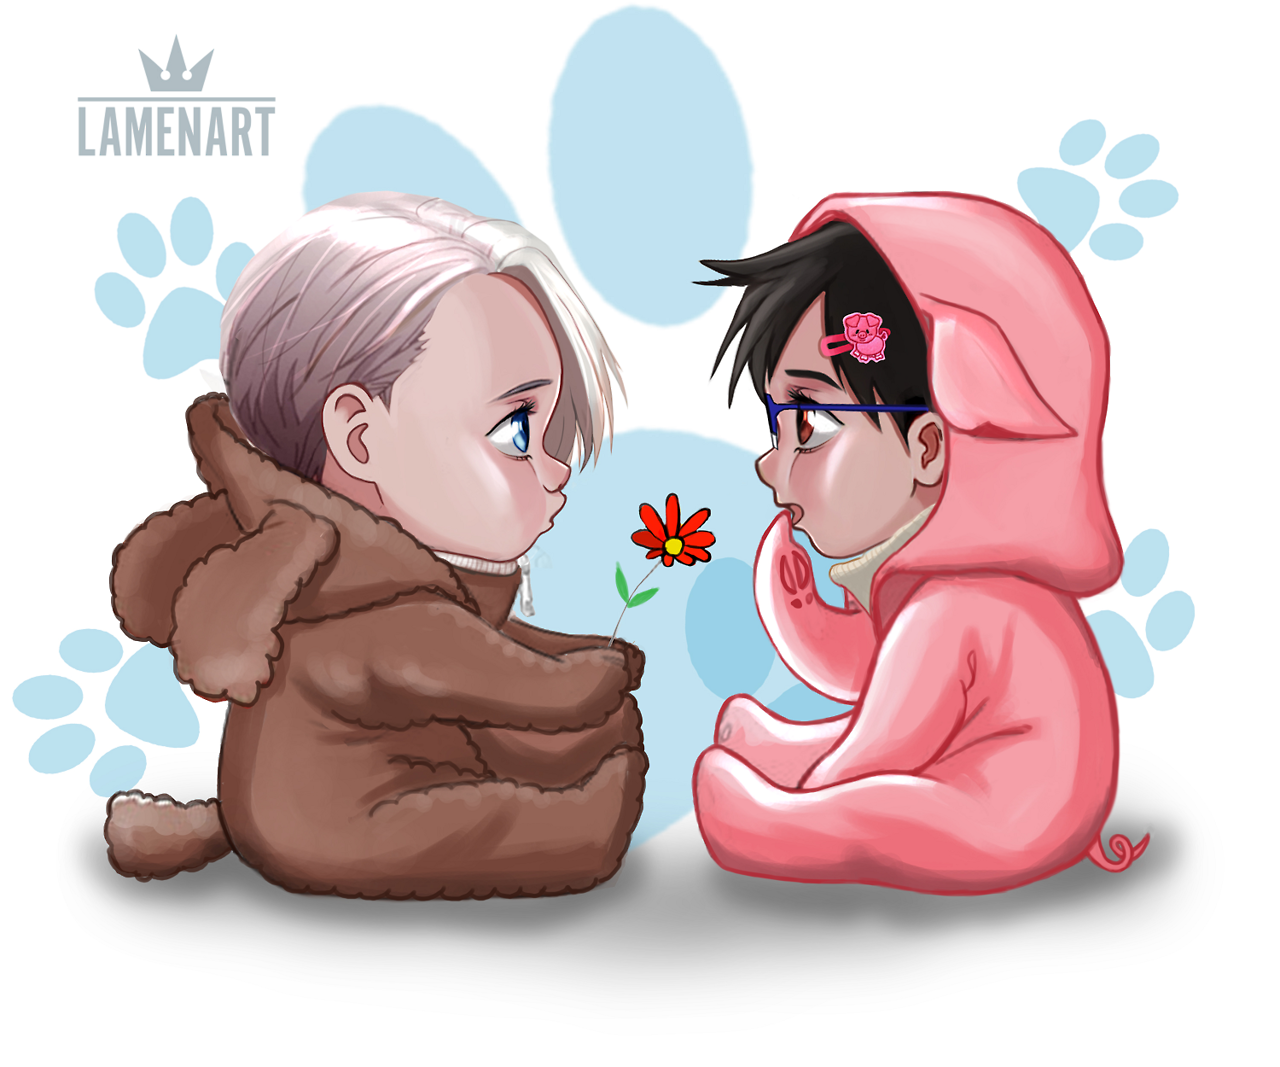 """lamenart """"Baby Victuuri I watched The Boss Baby. So that"""